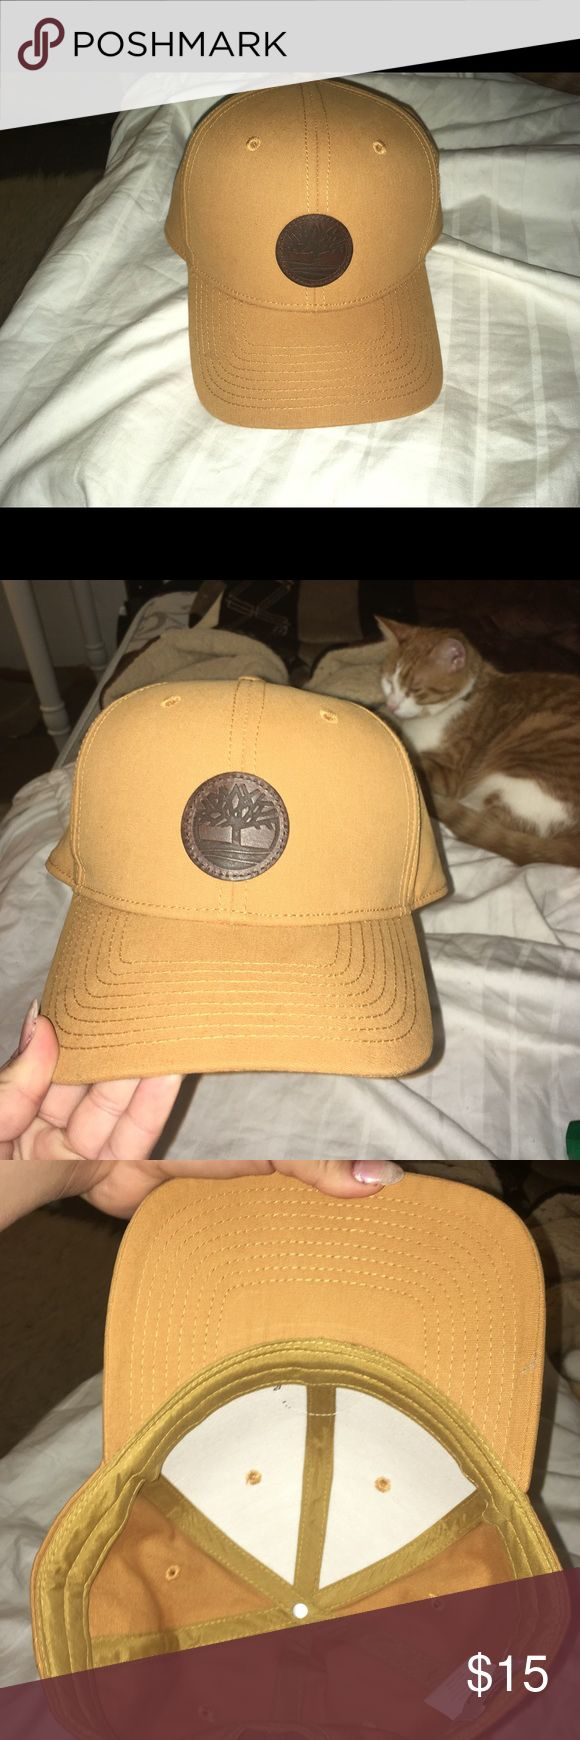 TIMBERLAND HAT Timberland hat  Clean , no stains no flaws perfect conditions  Mustard color  Super cute Timberland Accessories Hats